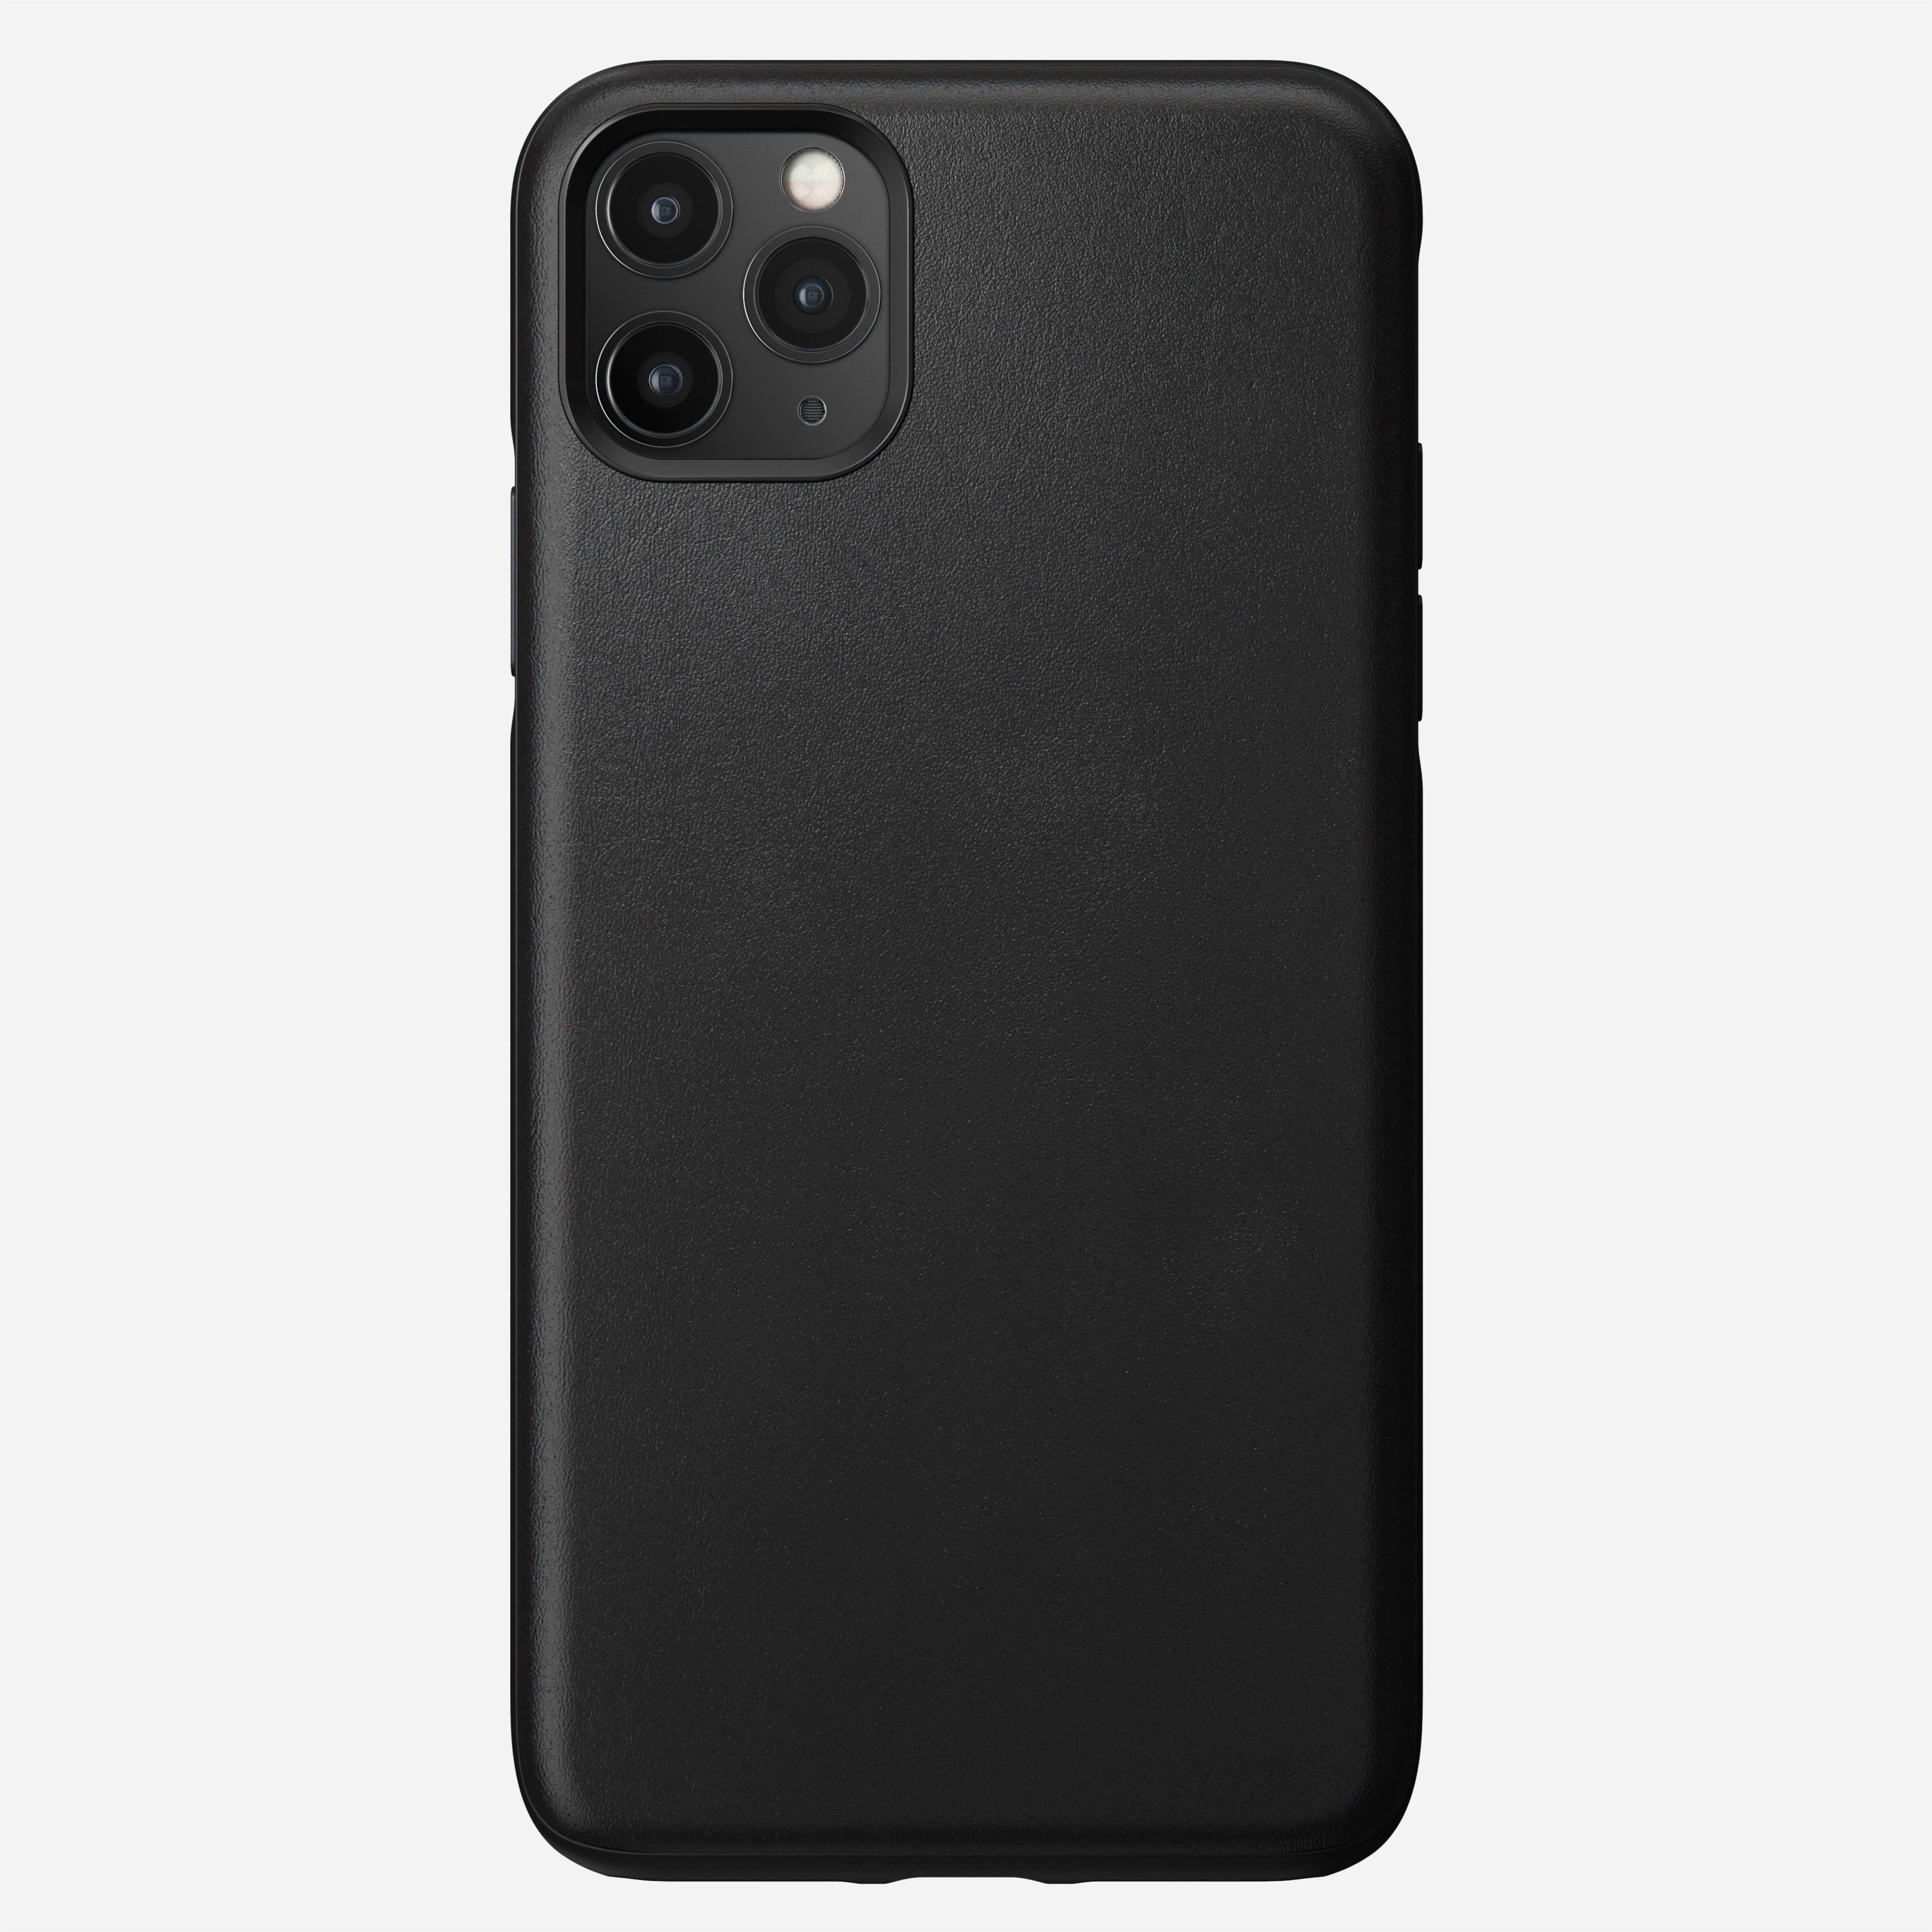 Rugged Leather Case for iPhone 11 Pro Max, Black